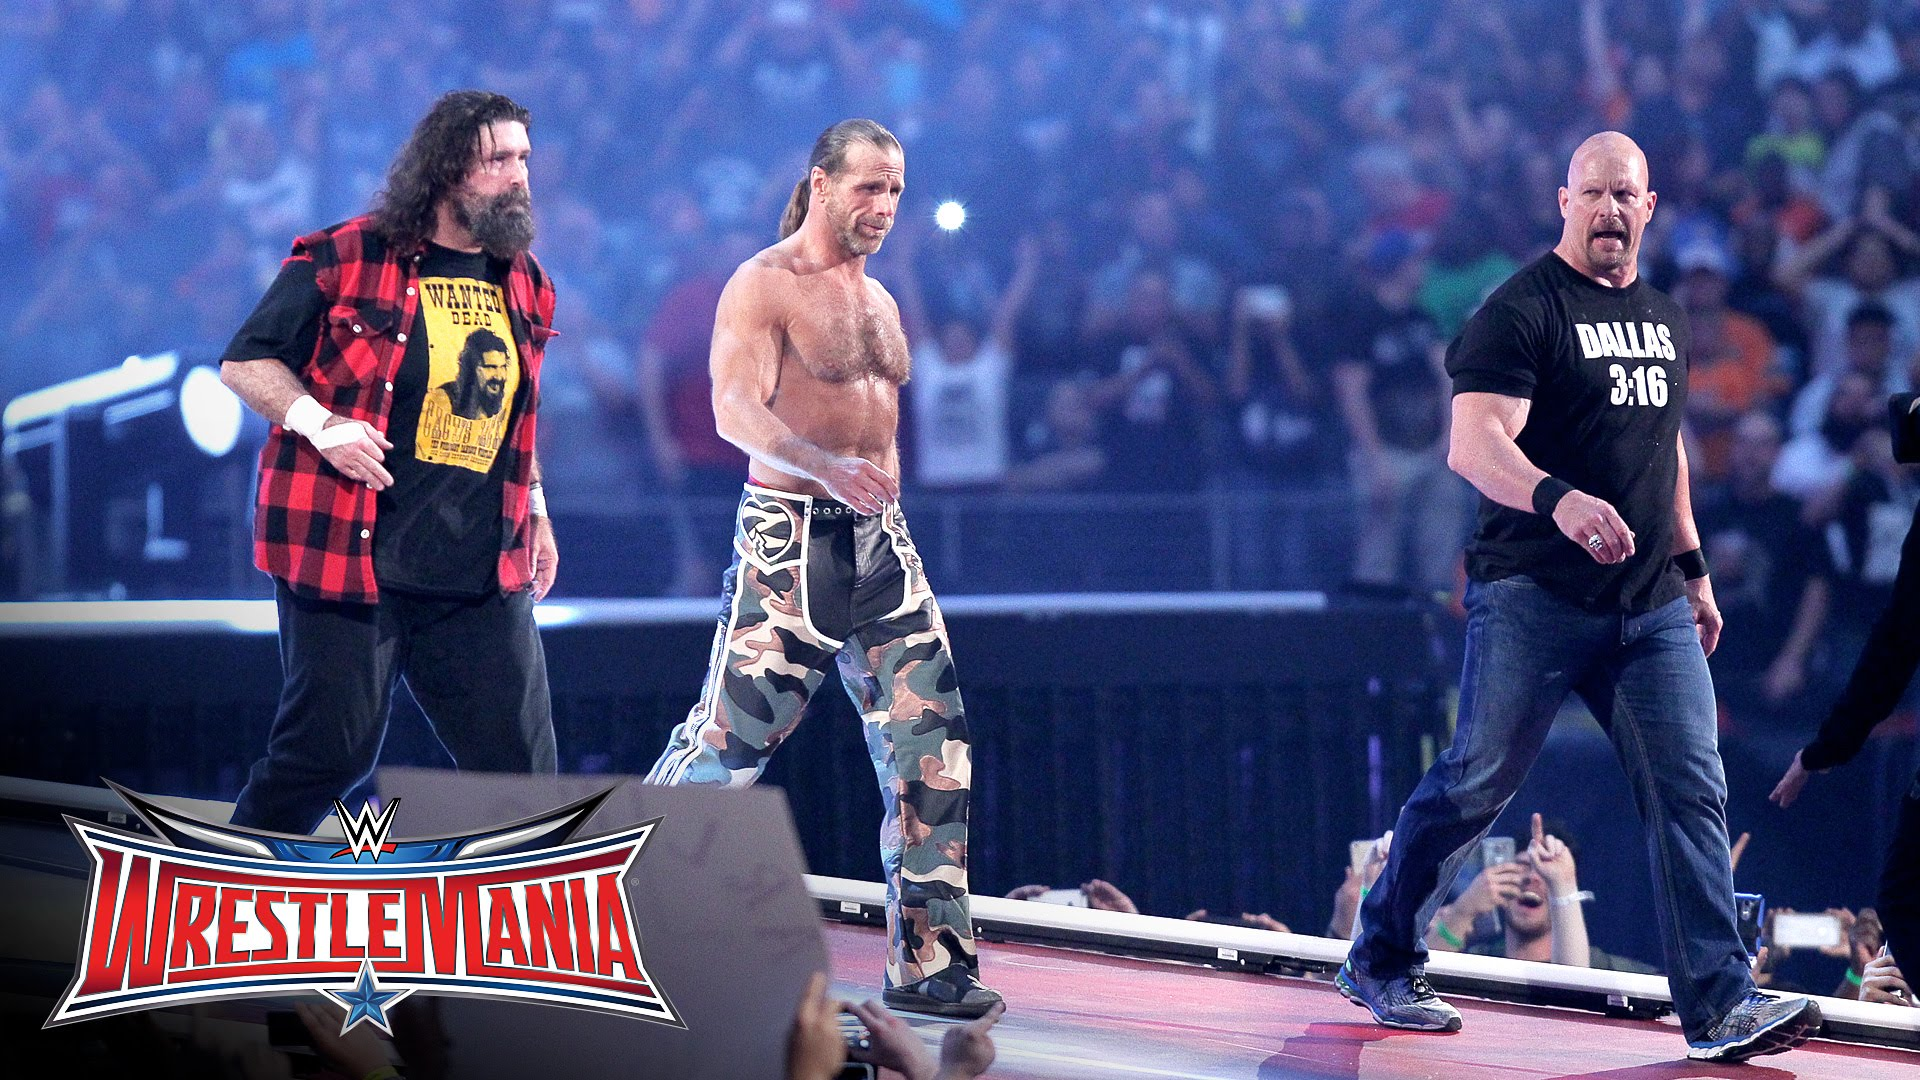 Stone Cold Steve Austin, Shawn Michaels & Mick Foley make Wrestle Mania appearence